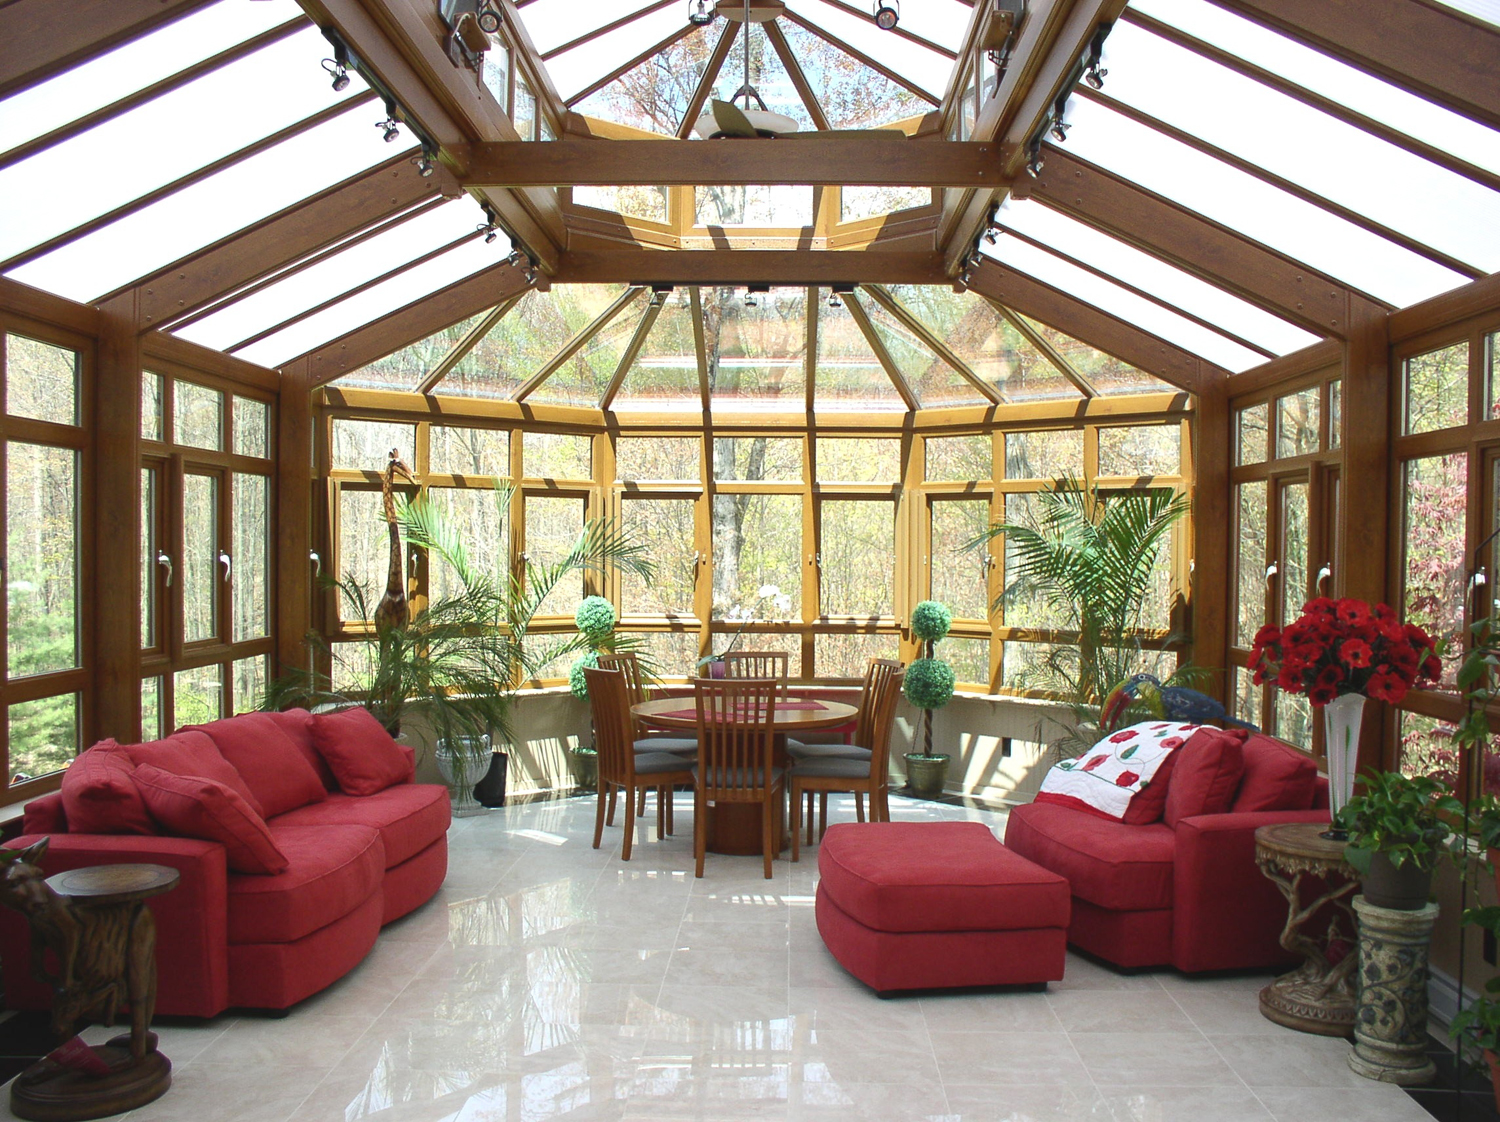 Best sunroom idea runs best detail for the next spring for Greenhouse sunroom addition